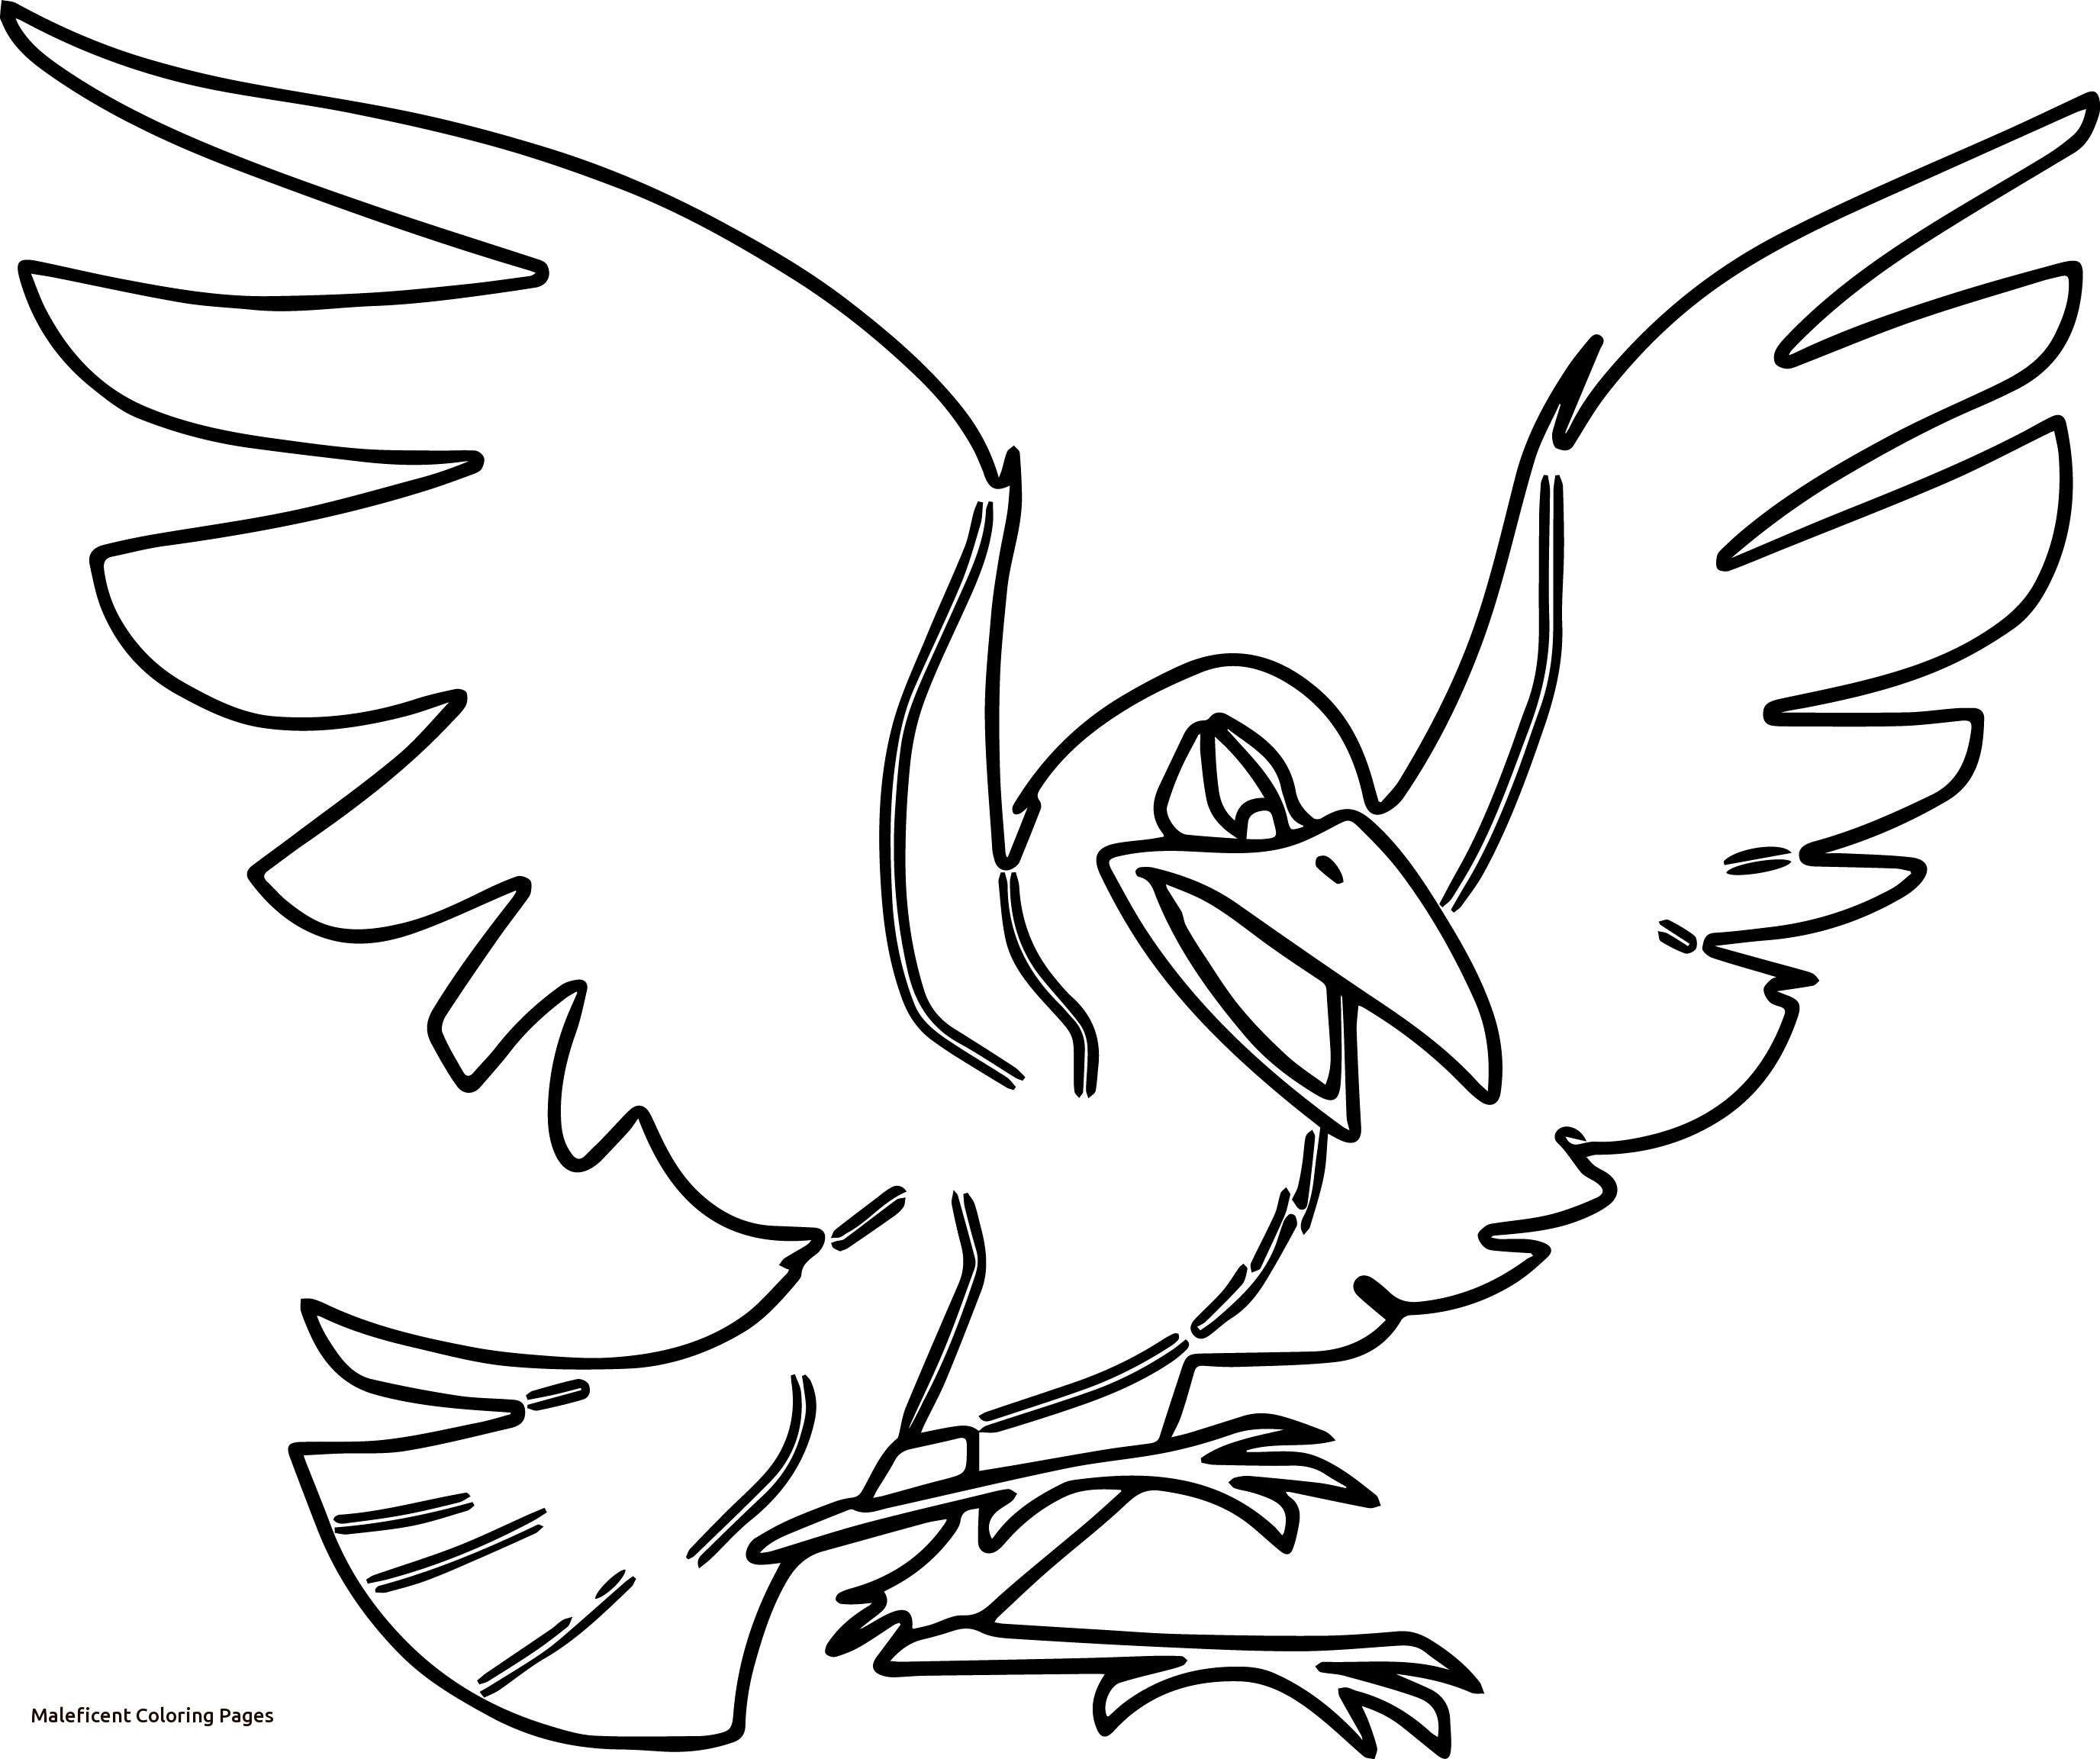 2752x2305 Coloring Pages For Alluring Maleficent Page